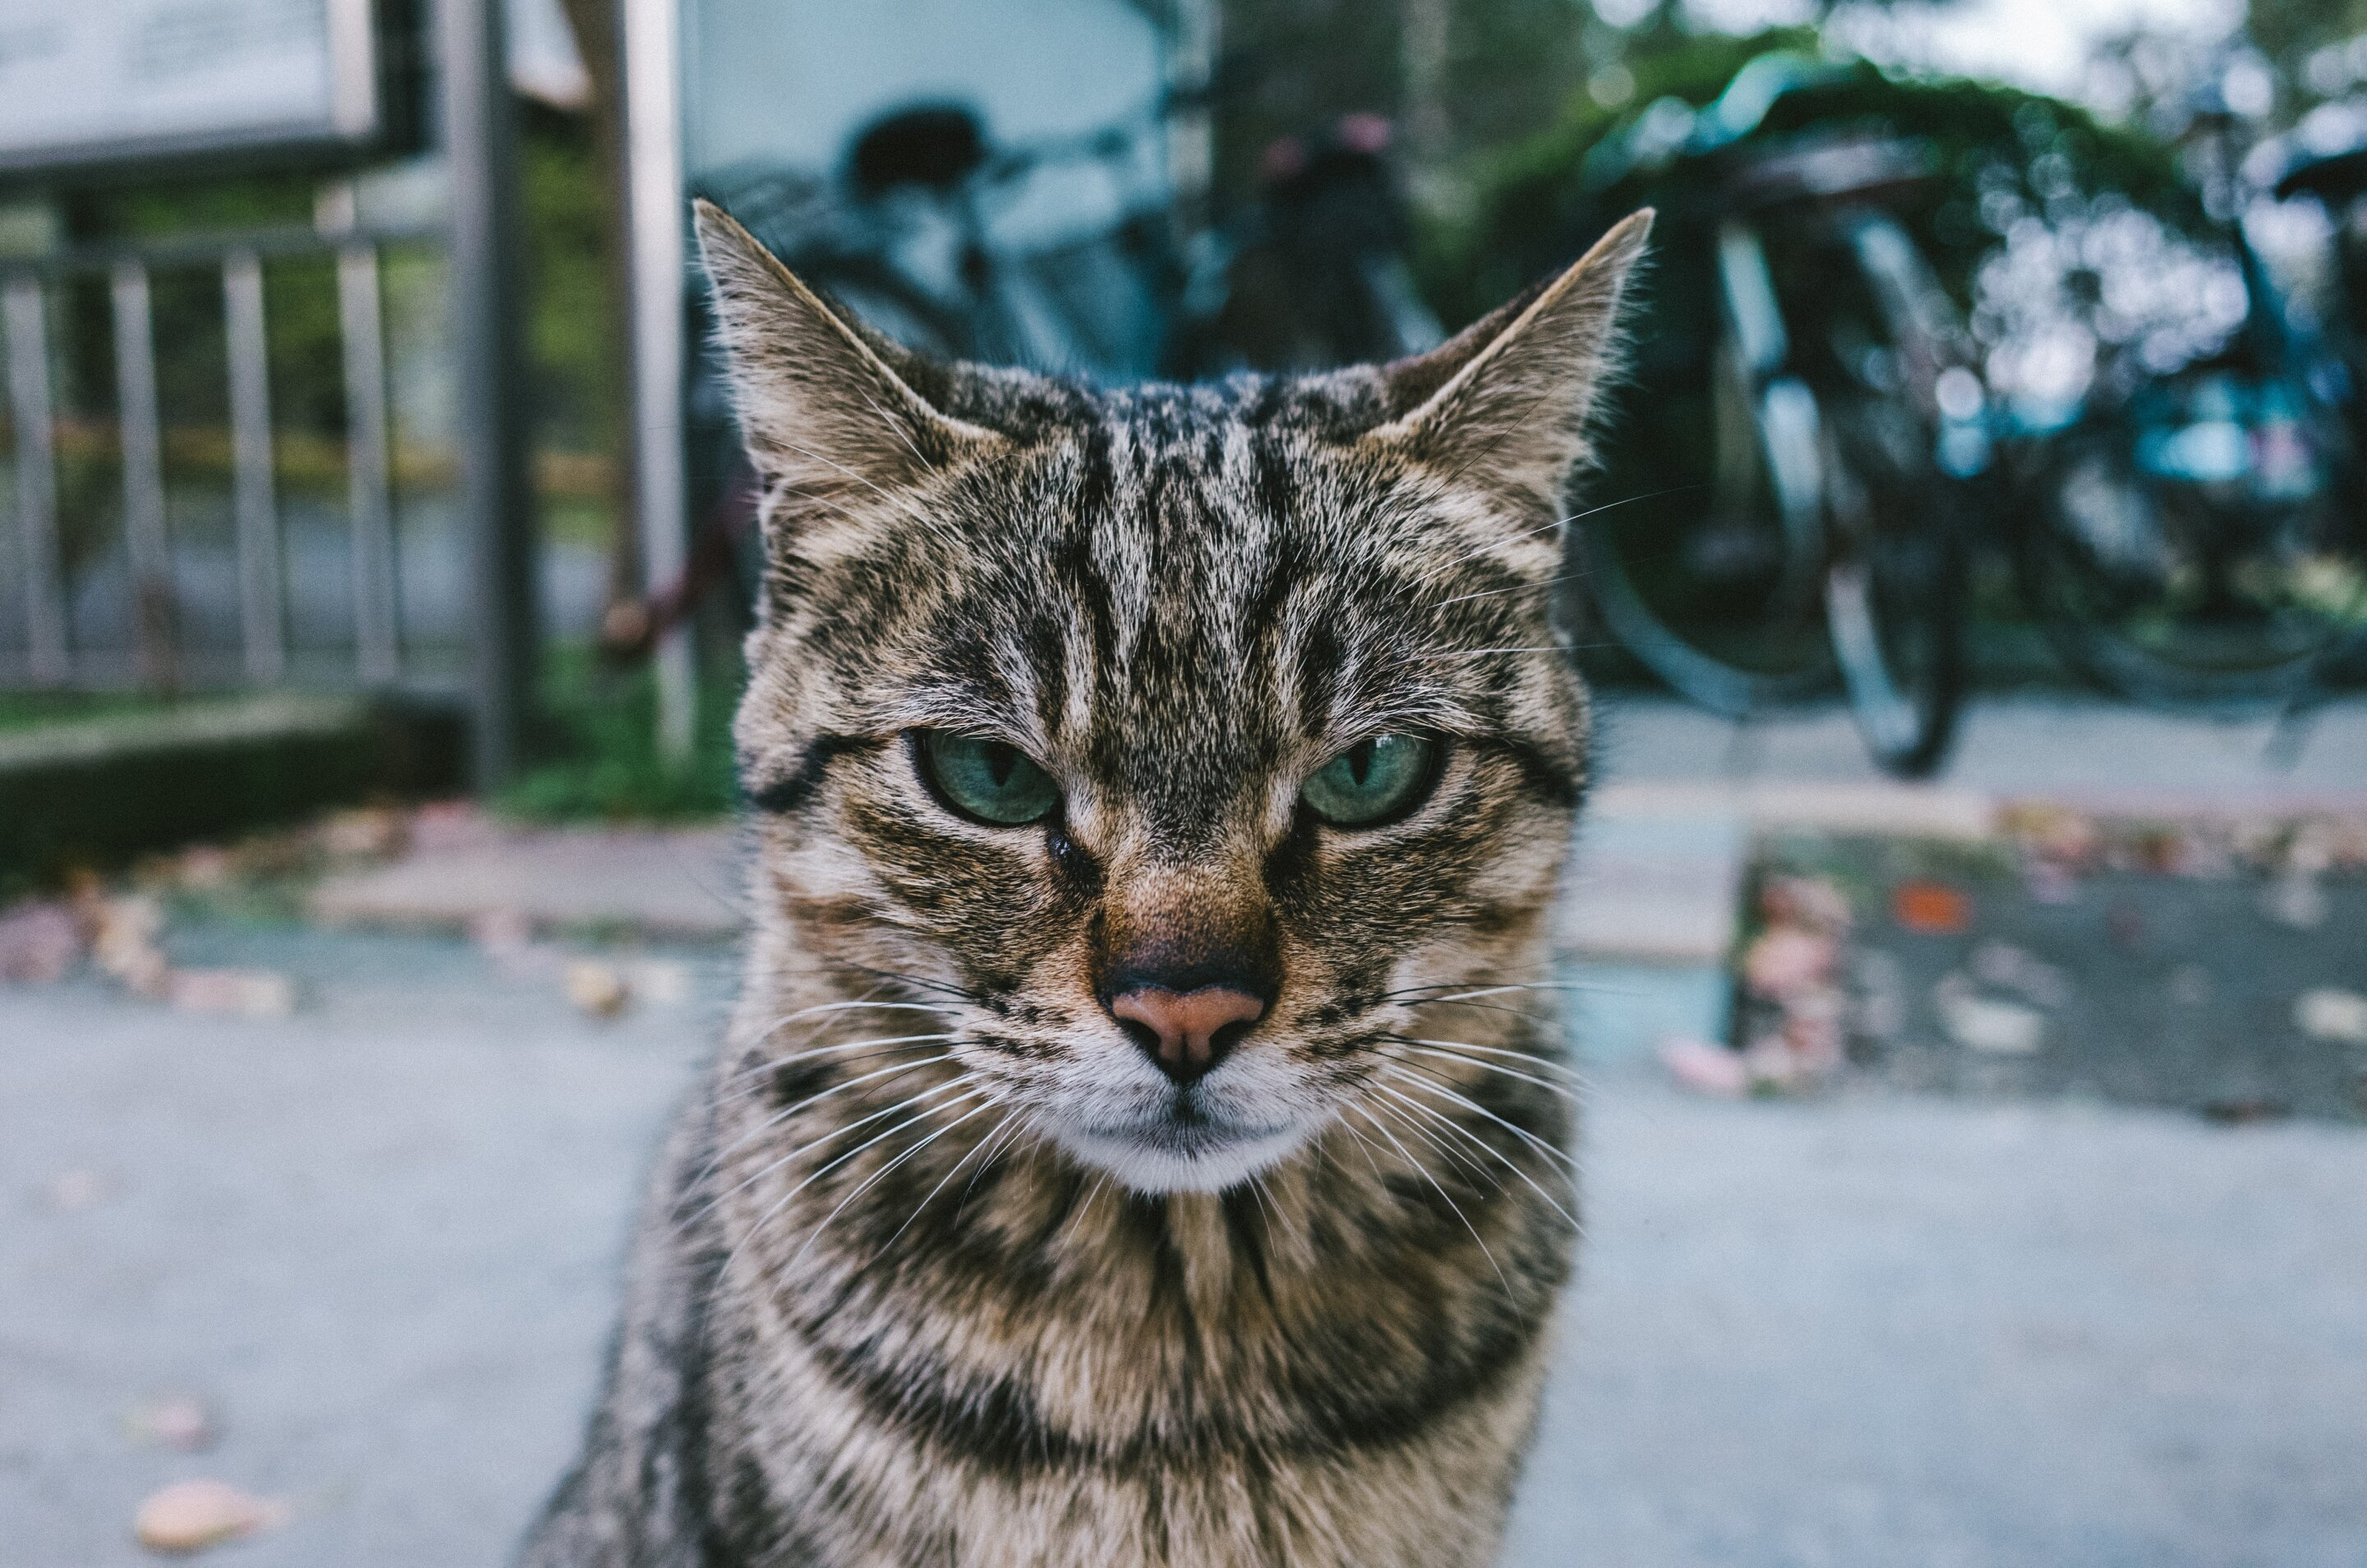 Study: Letting cats decide when to be petted avoids hostility and increases their affection